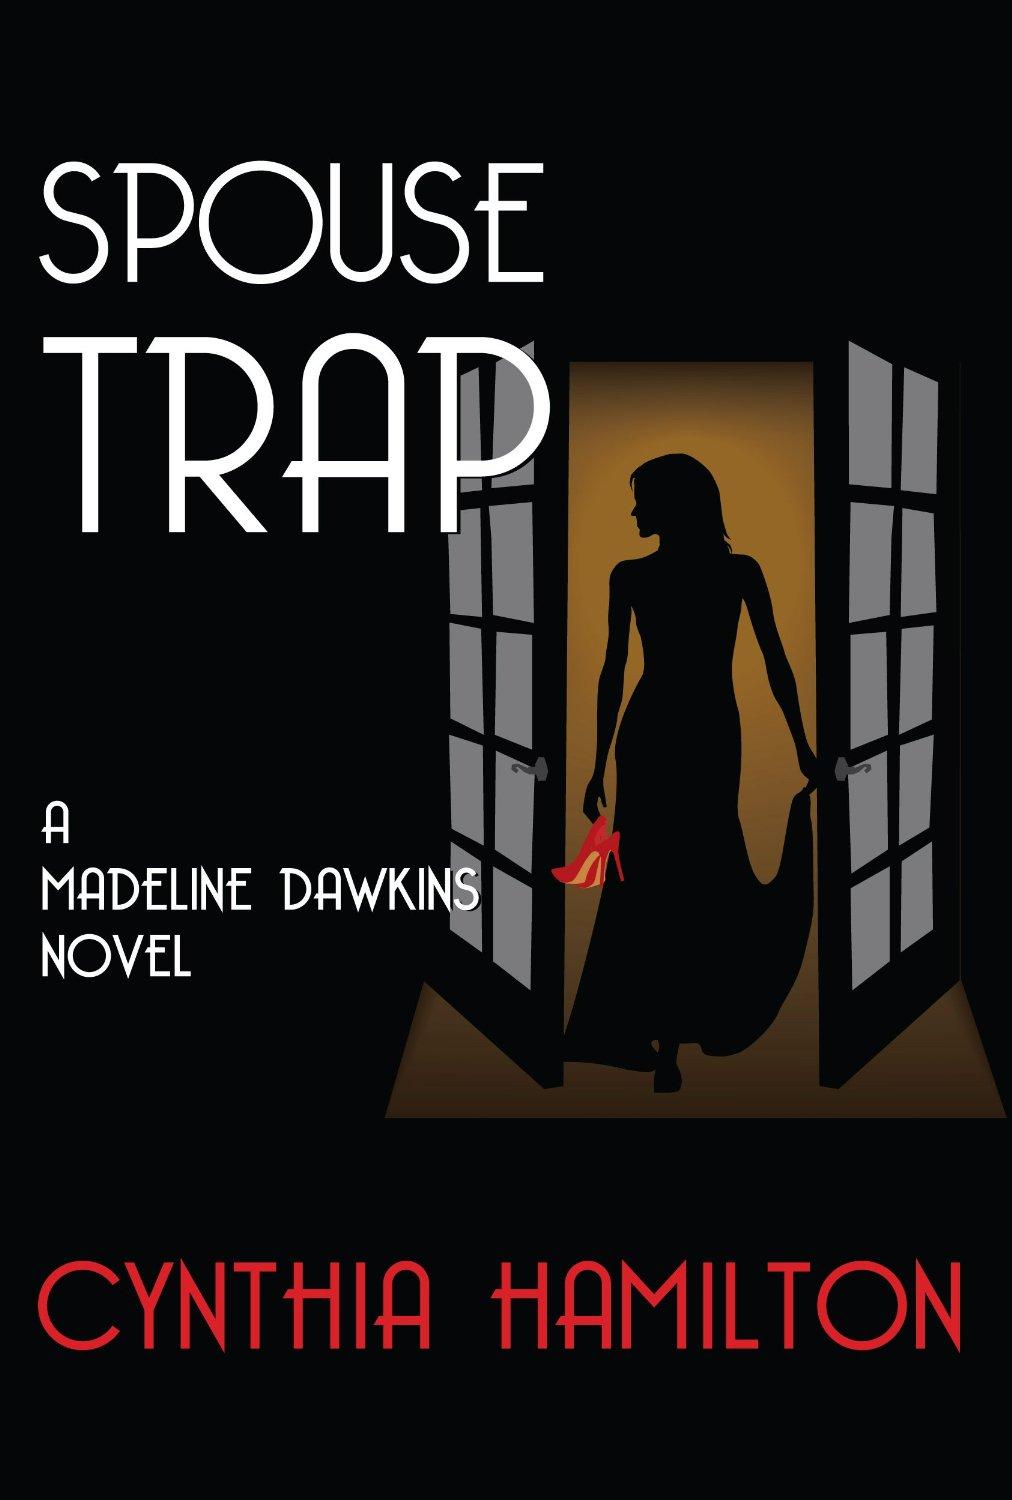 Spouse Trap by Cynthia Hamilton